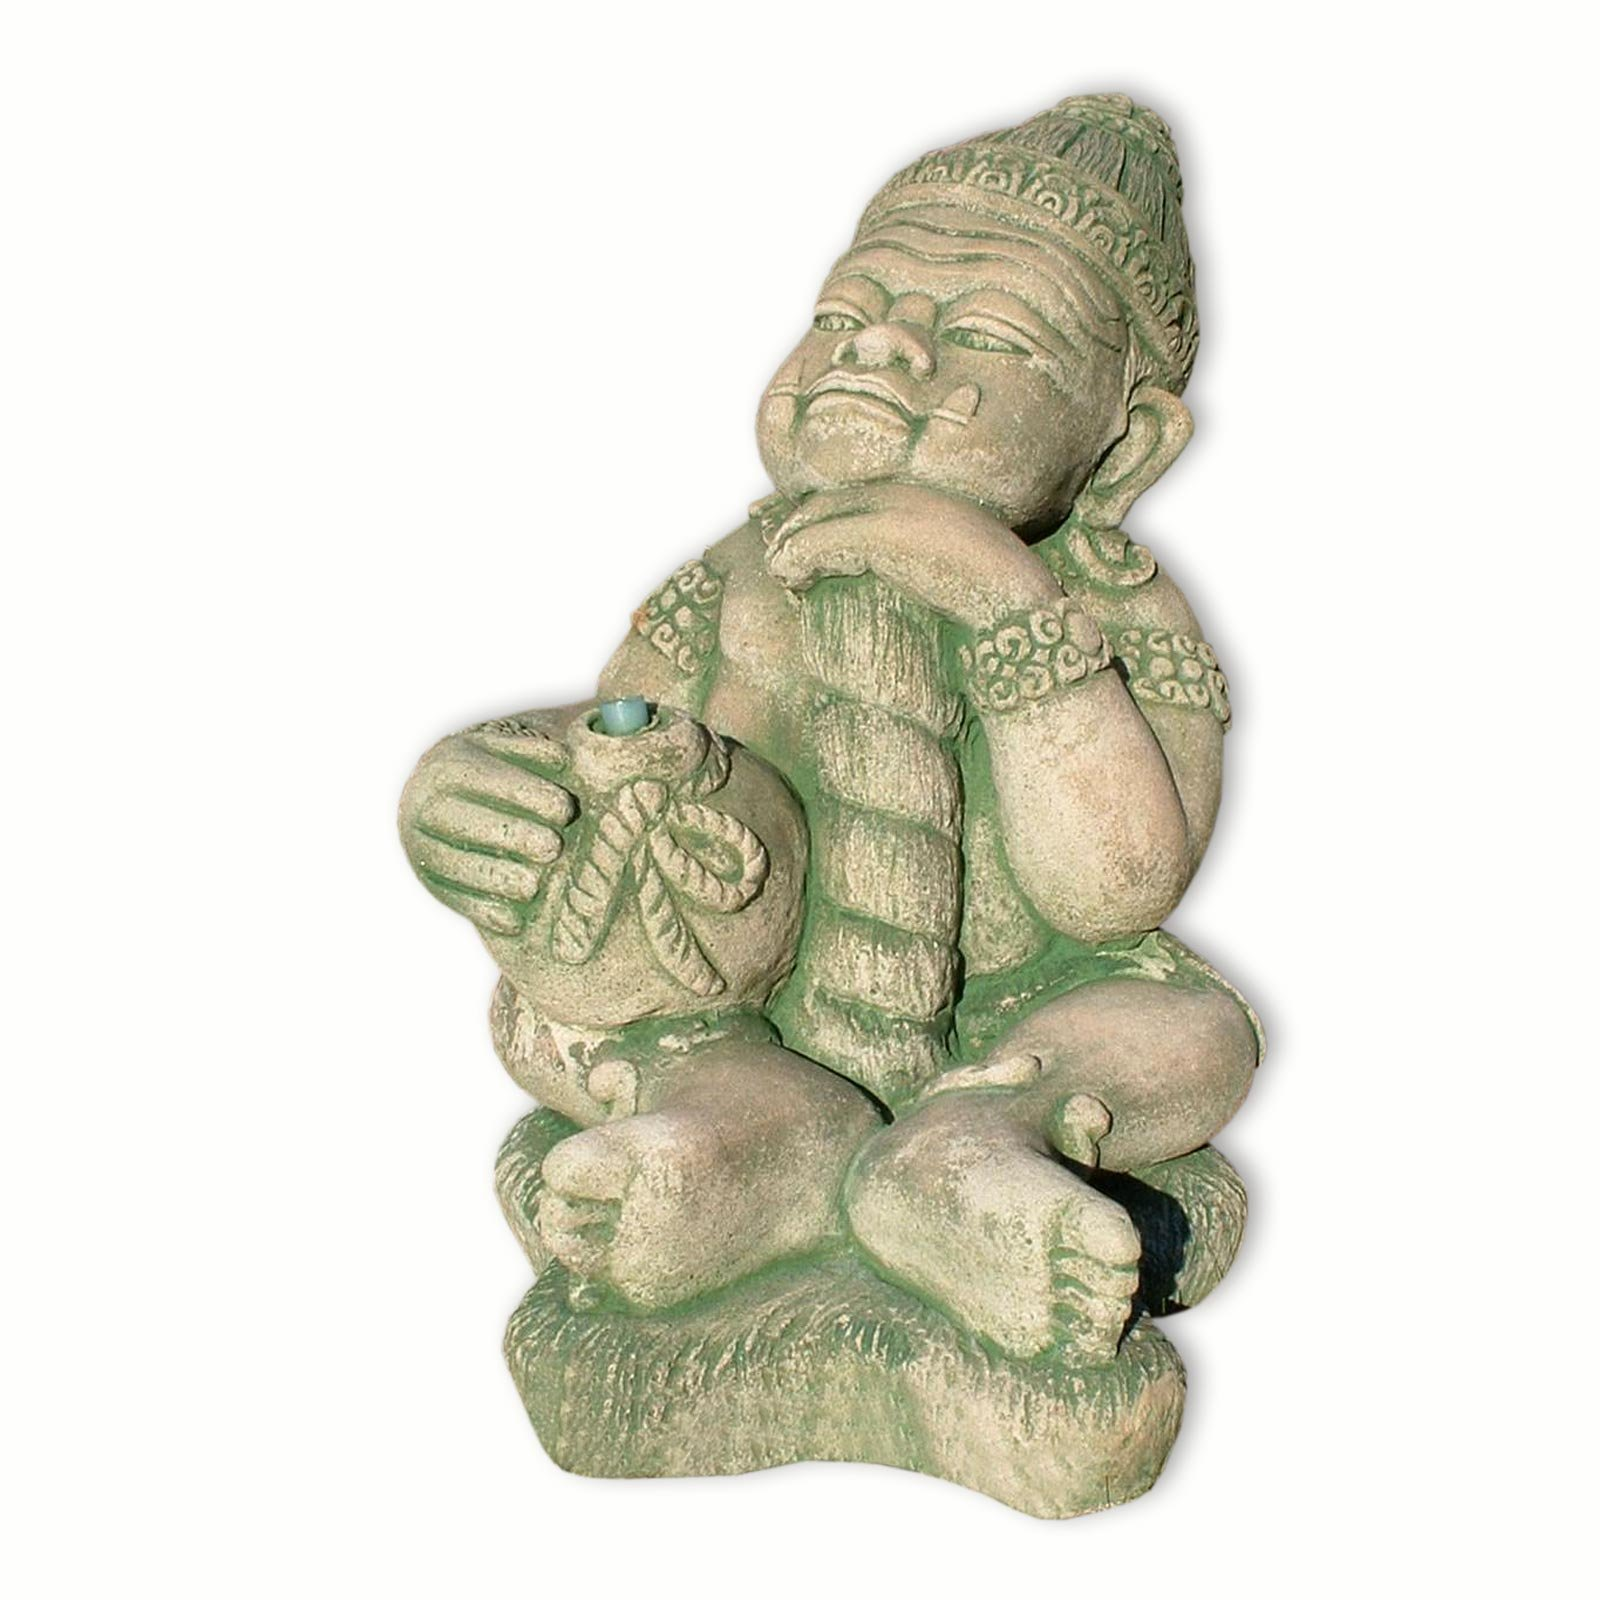 Thai guardian sitting, fountain, water shoot, sandstone, imported from Thailand, red/green (10233) by Wilai GmbH